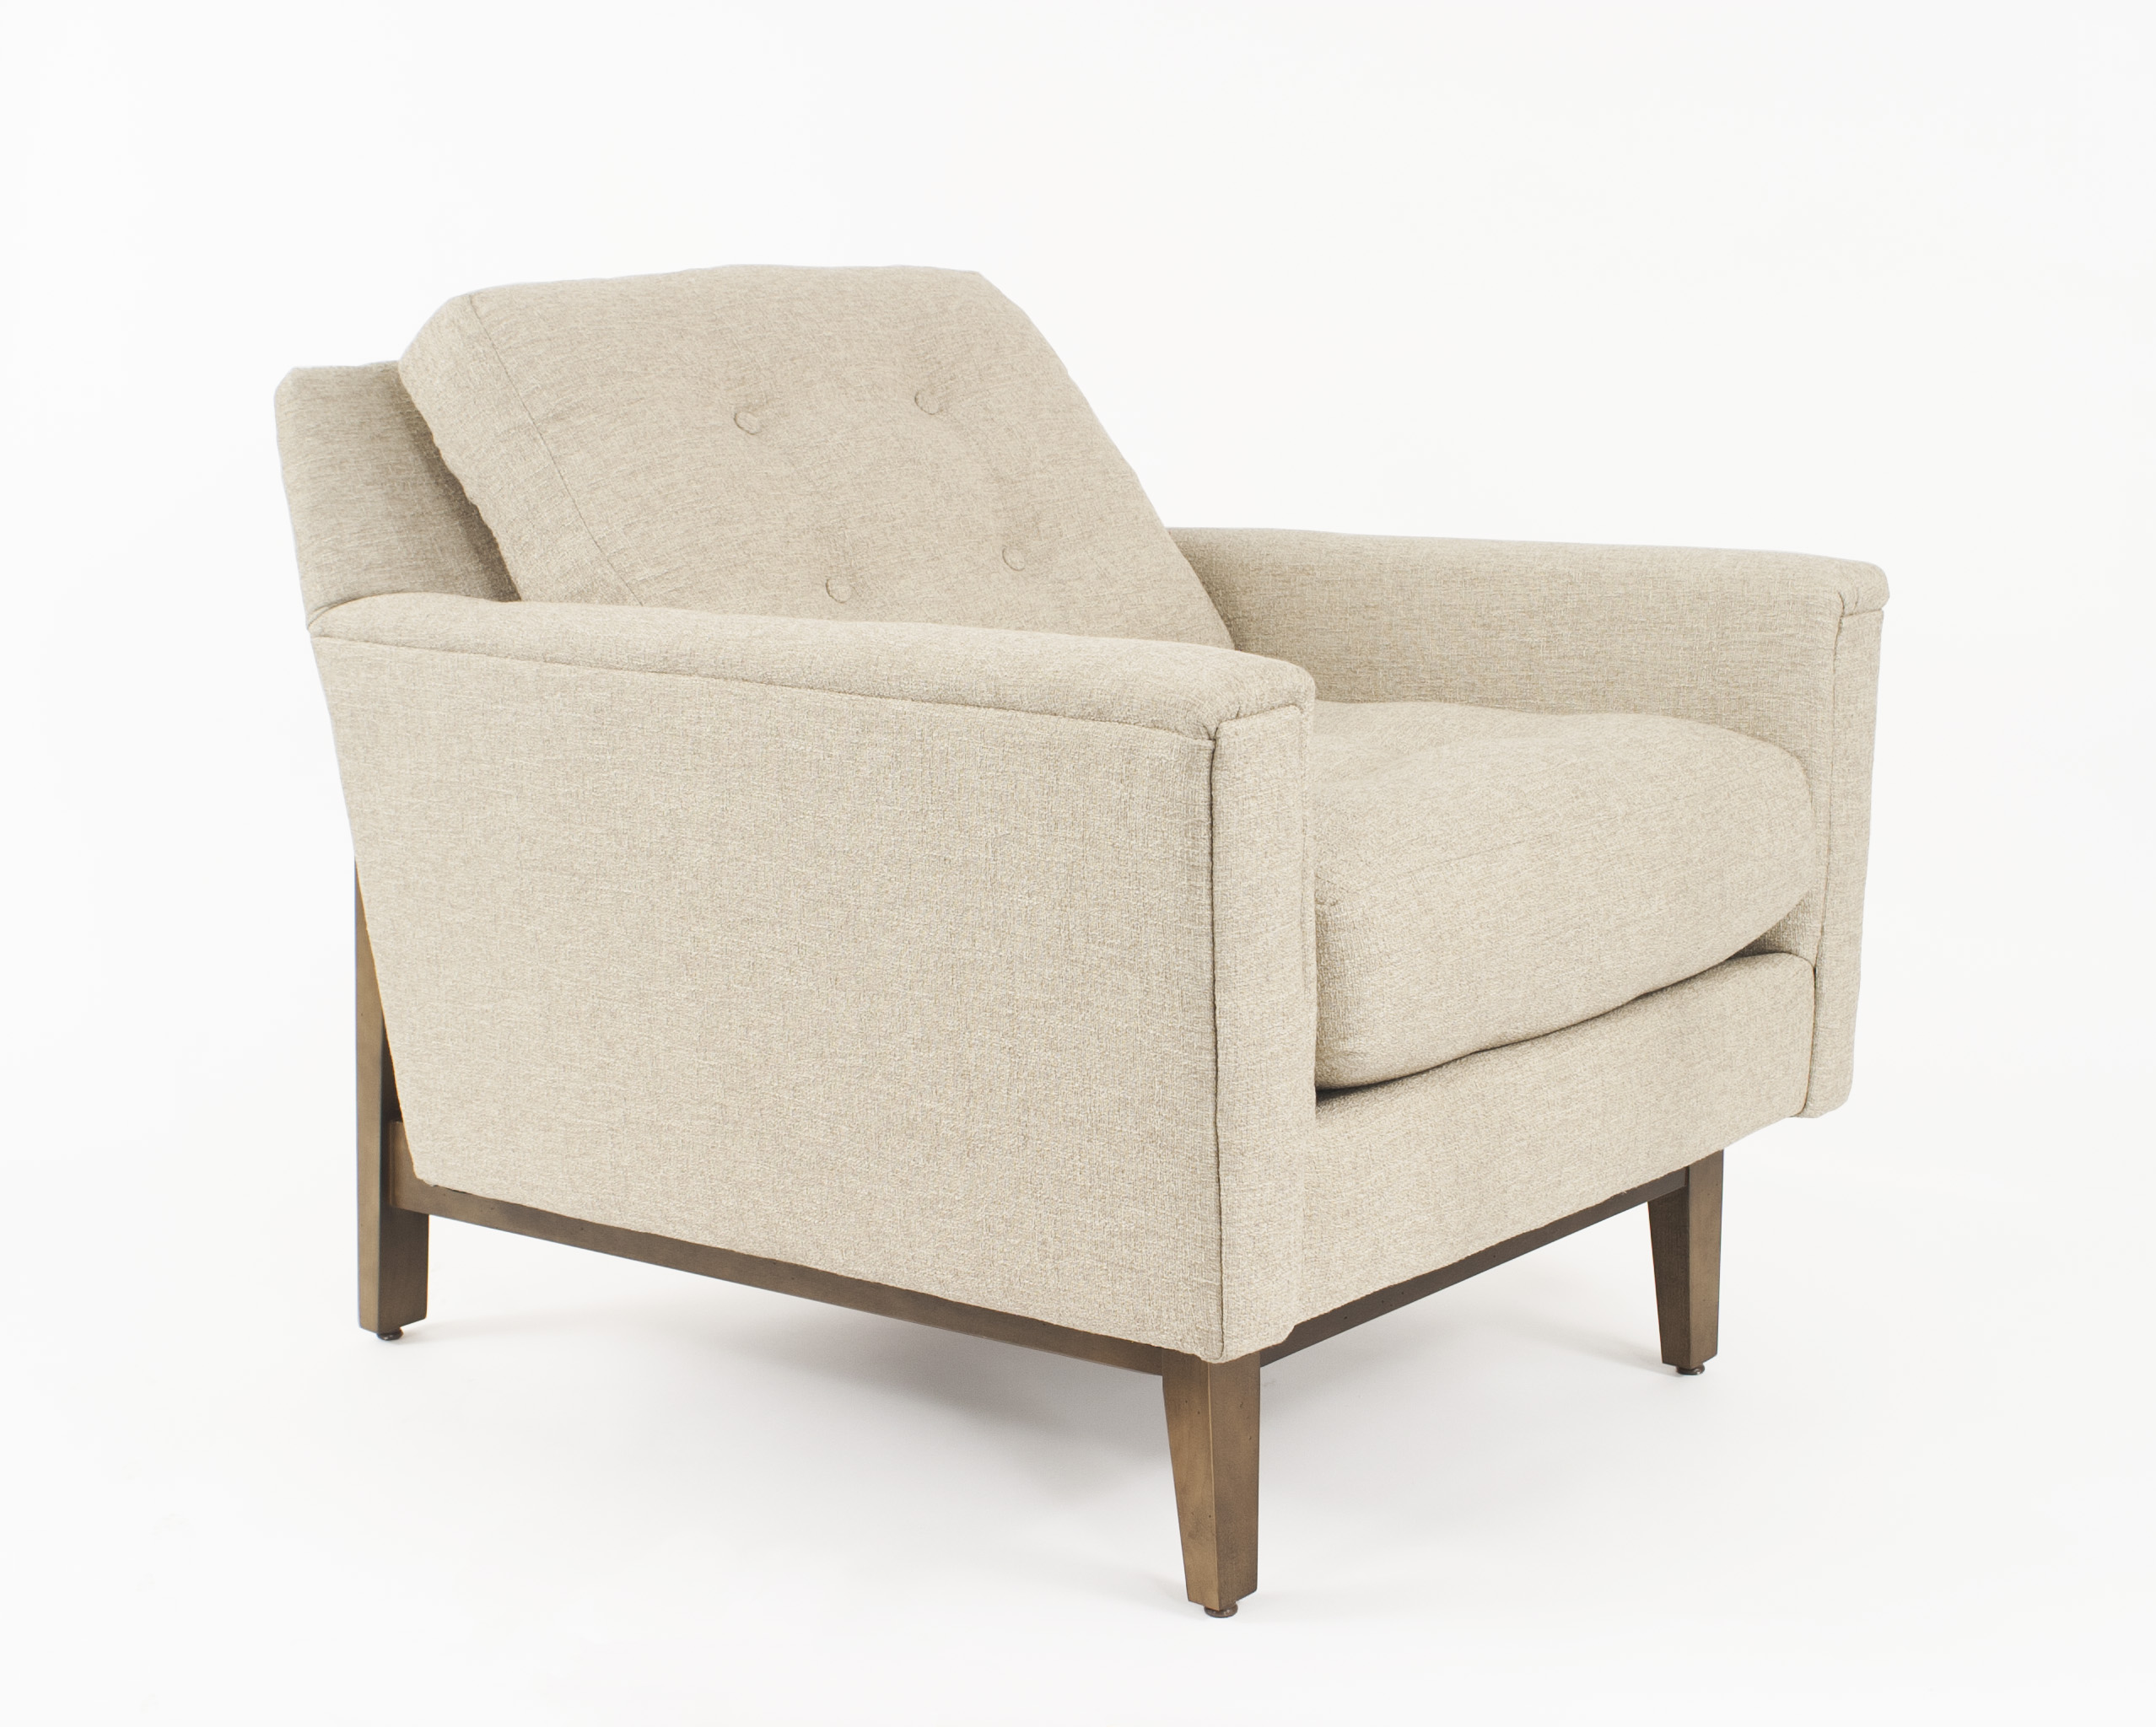 2 Contemporary Arm Chairs With A Wooden Frames, Square Tapered Legs, And  Textured Beige Upholstery With Button Tufted Backs (2   PRICED EACH)  (Matching ...